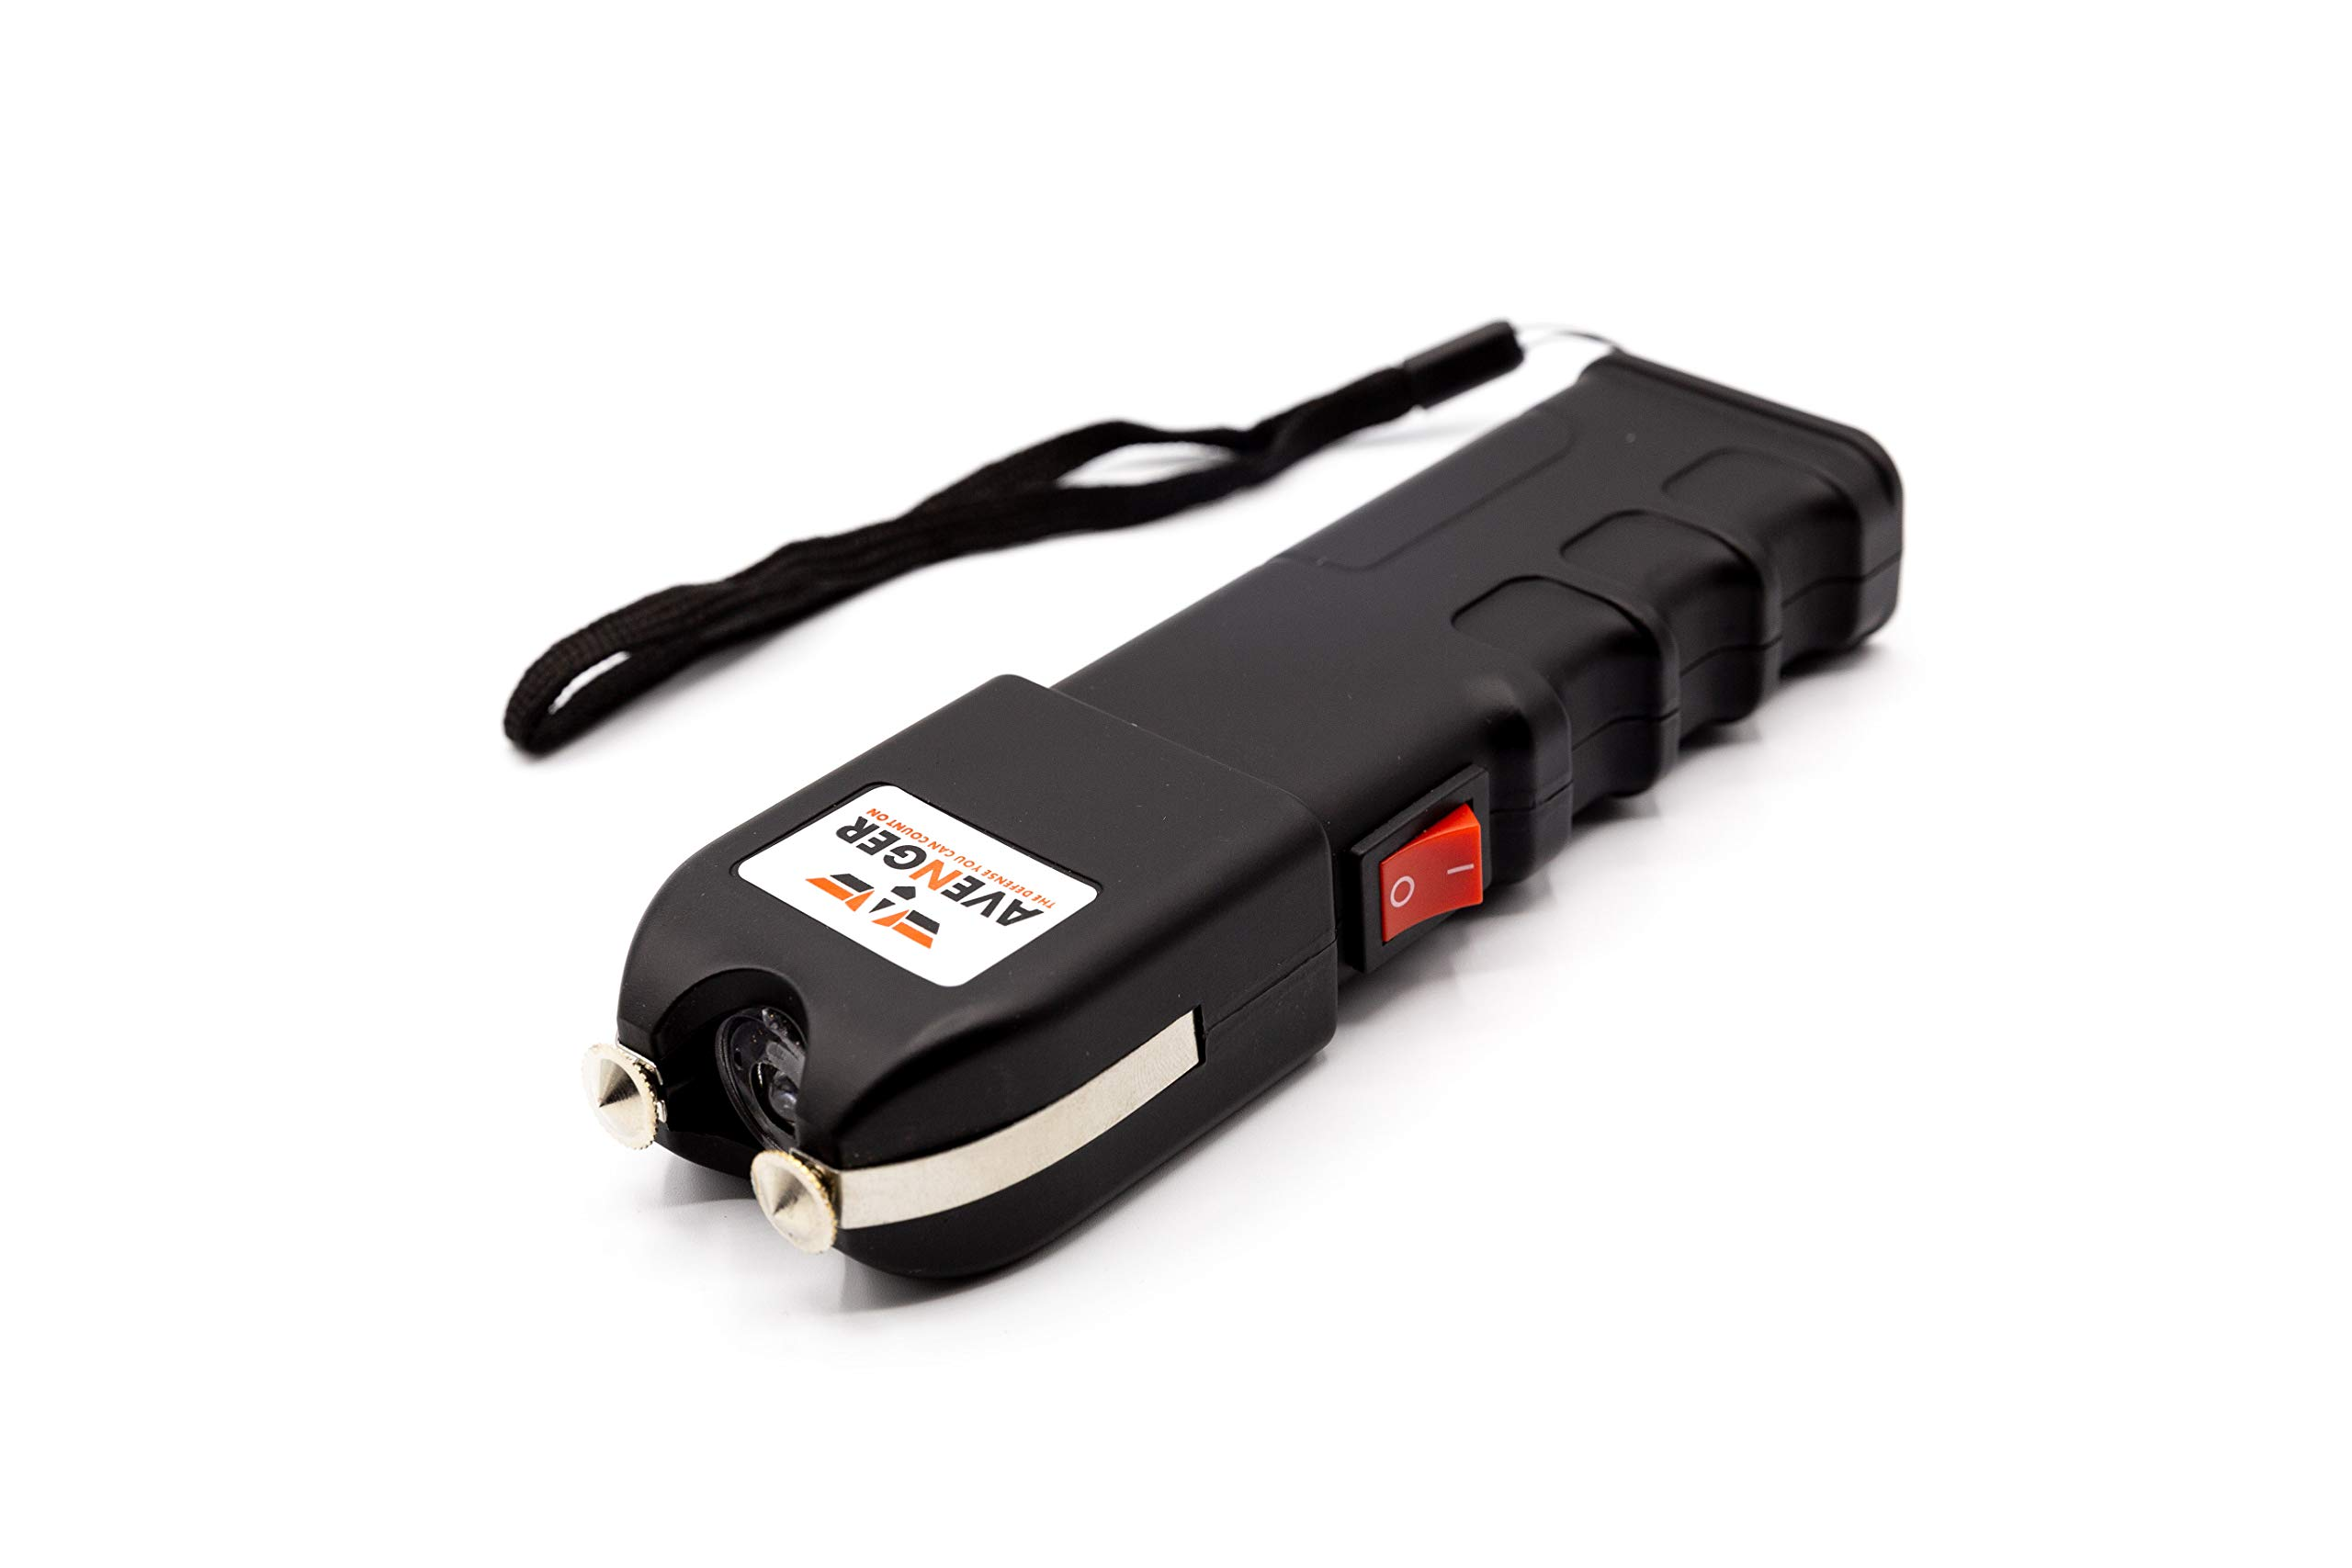 Avenger Defense Portable Stun Gun - Extremely Powerful Rechargeable Stun Gun for Self-Defense and Protection - Built-In Flashlight and Carrying Case - Intimidating and Comfortable Design - Loud Noise by Avenger Defense